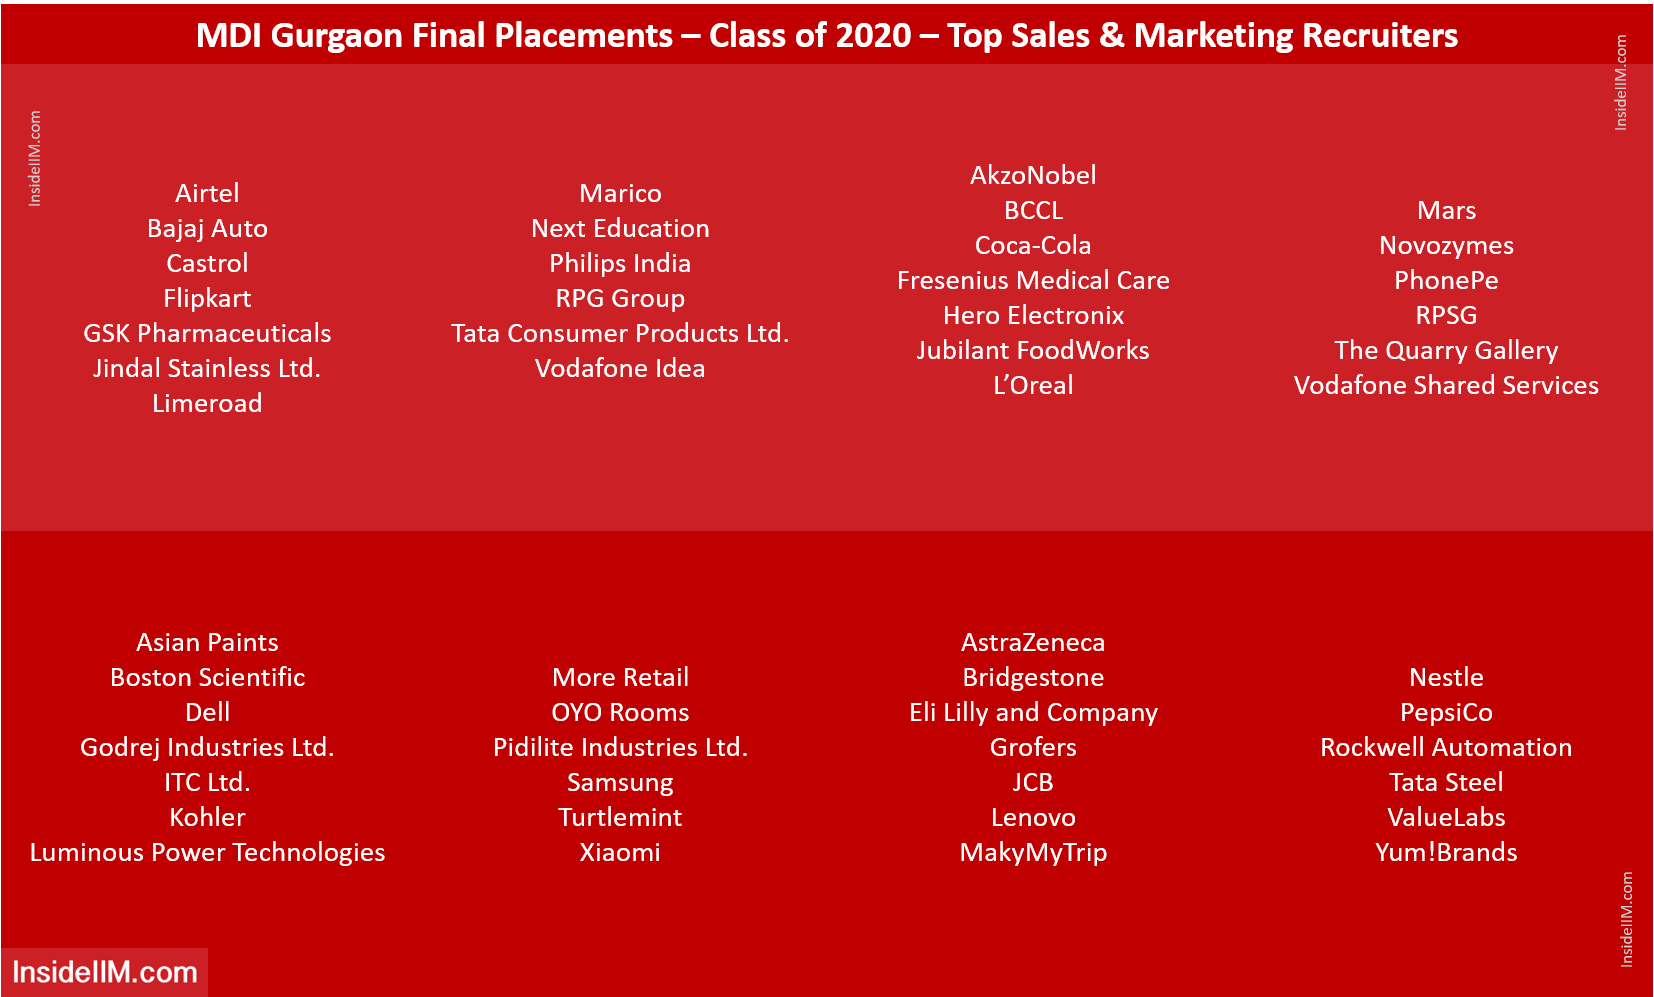 MDI Gurgaon Final Placements 2020 - Top Sales & Marketing Recruiters